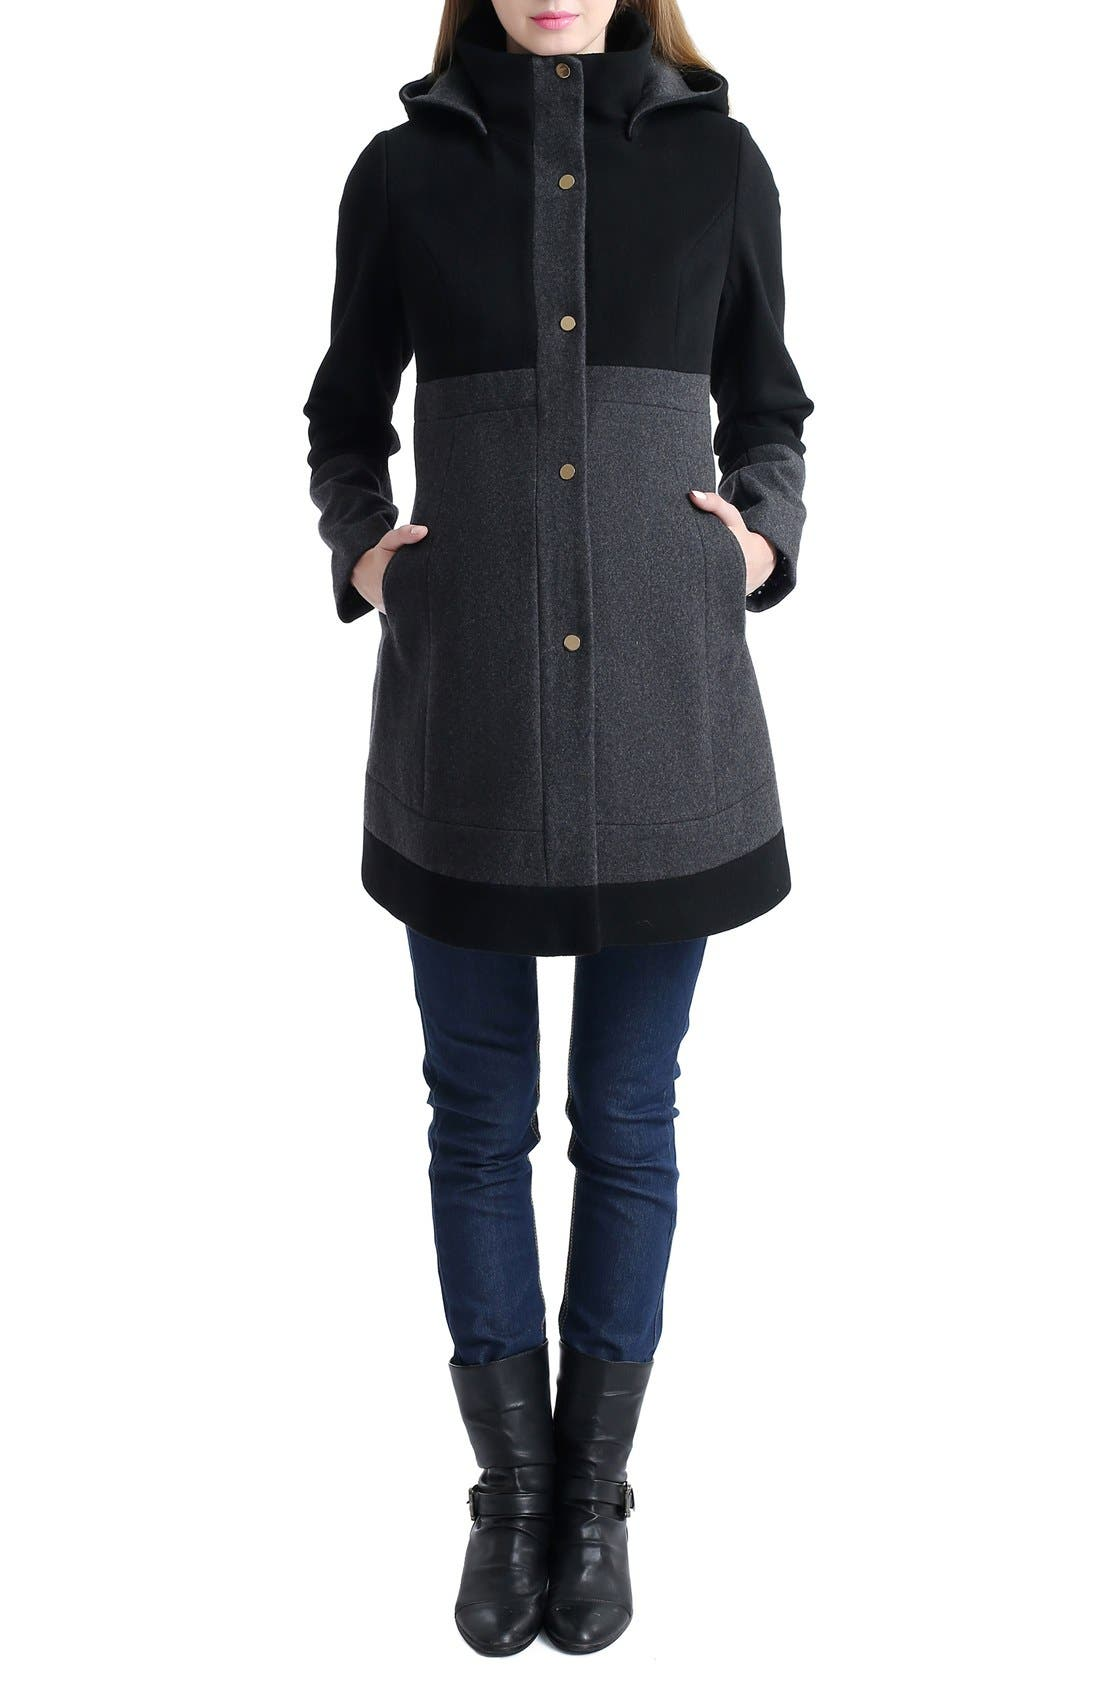 'Tessa' Colorblock Maternity Coat,                             Main thumbnail 1, color,                             BLACK